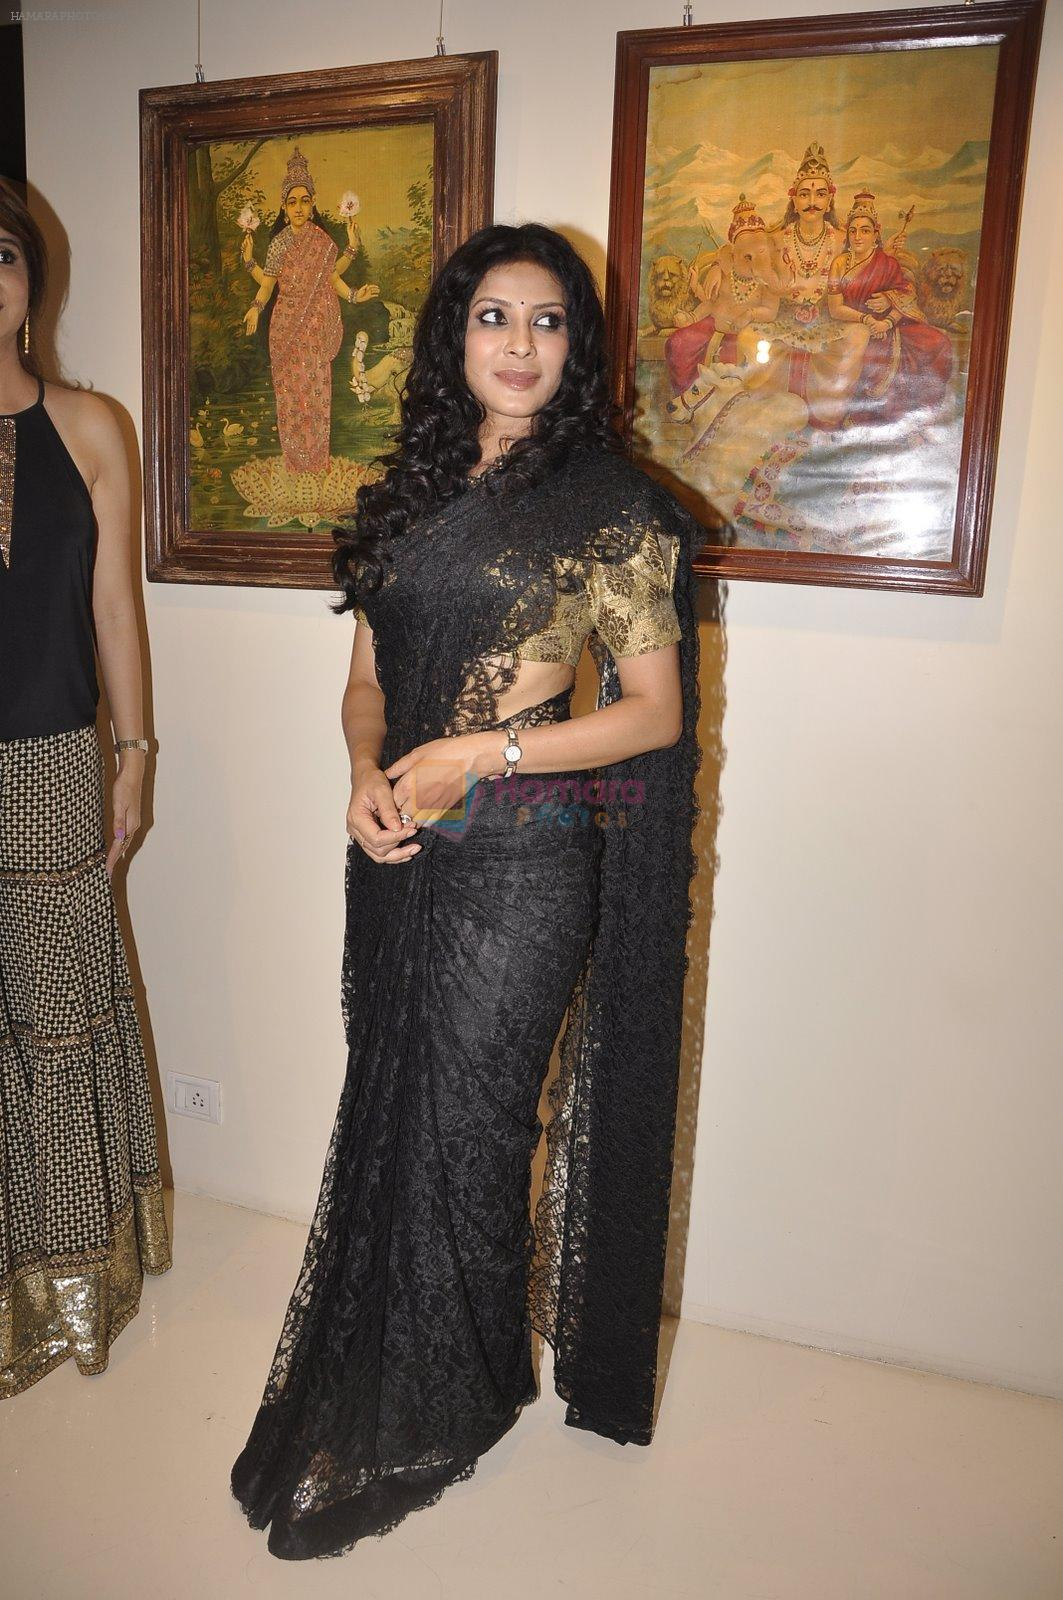 Nandana Sen at the Inauguration of Raja Ravi Verma Collection of Life and Work in marine Lines, Mumbai on 5th Nov 2014